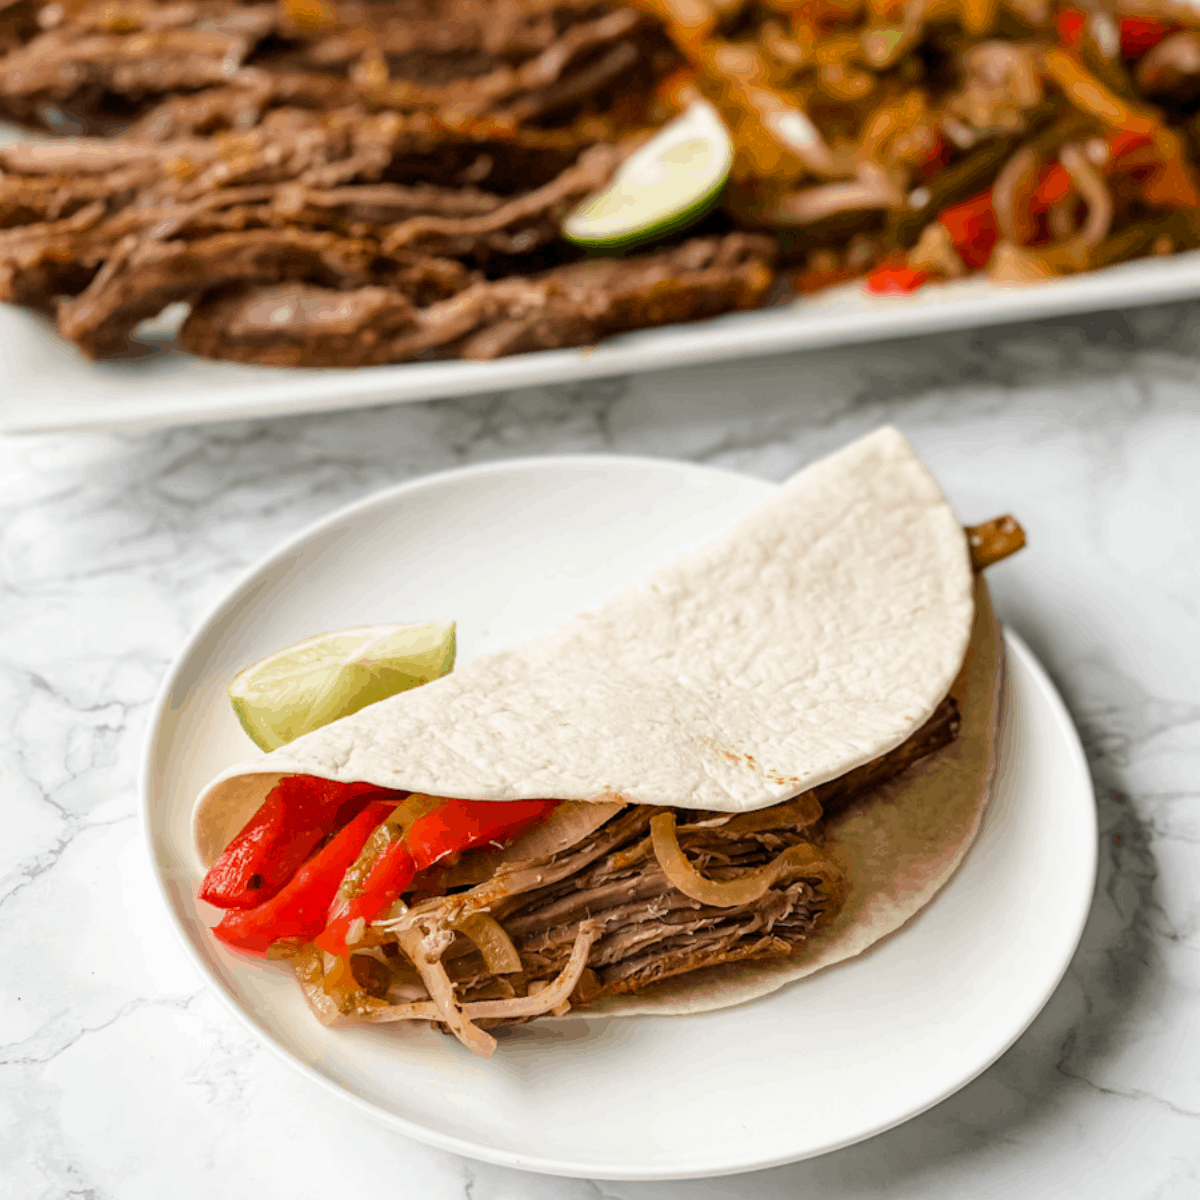 Steak fajita in a flour tortilla with a platter of sliced steak, onions, and peppers in the background.